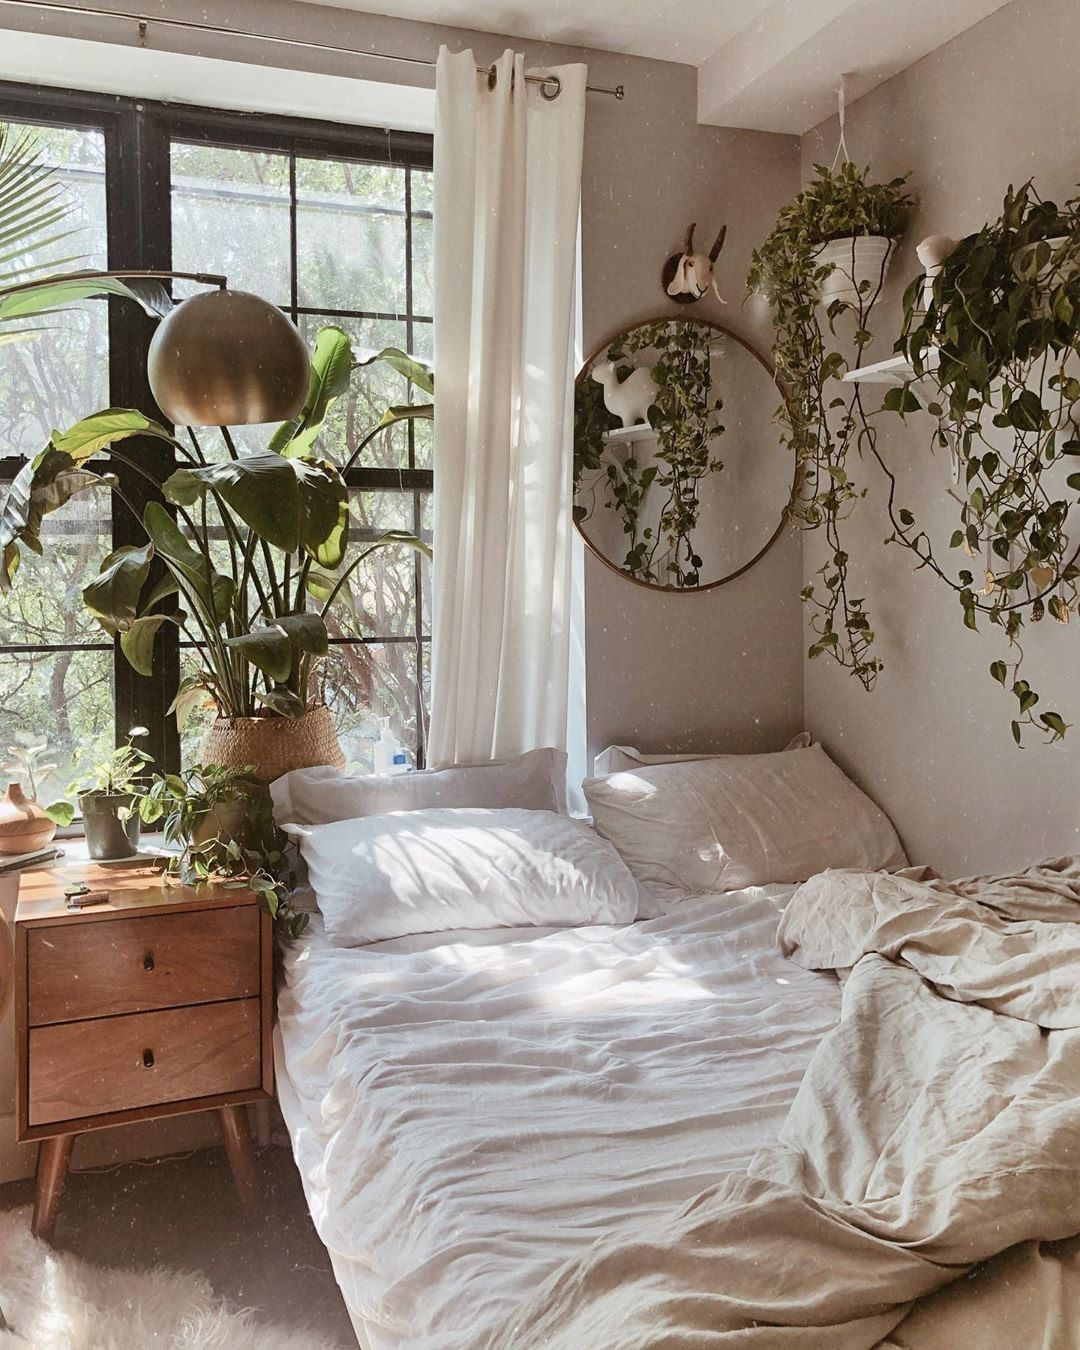 Free People Uk On Instagram When All You Want Is A Cosy Weekend In Rg Jnaydaily Room Inspiration Bedroom Aesthetic Bedroom Bedroom Makeover Aesthetic bedroom decor uk